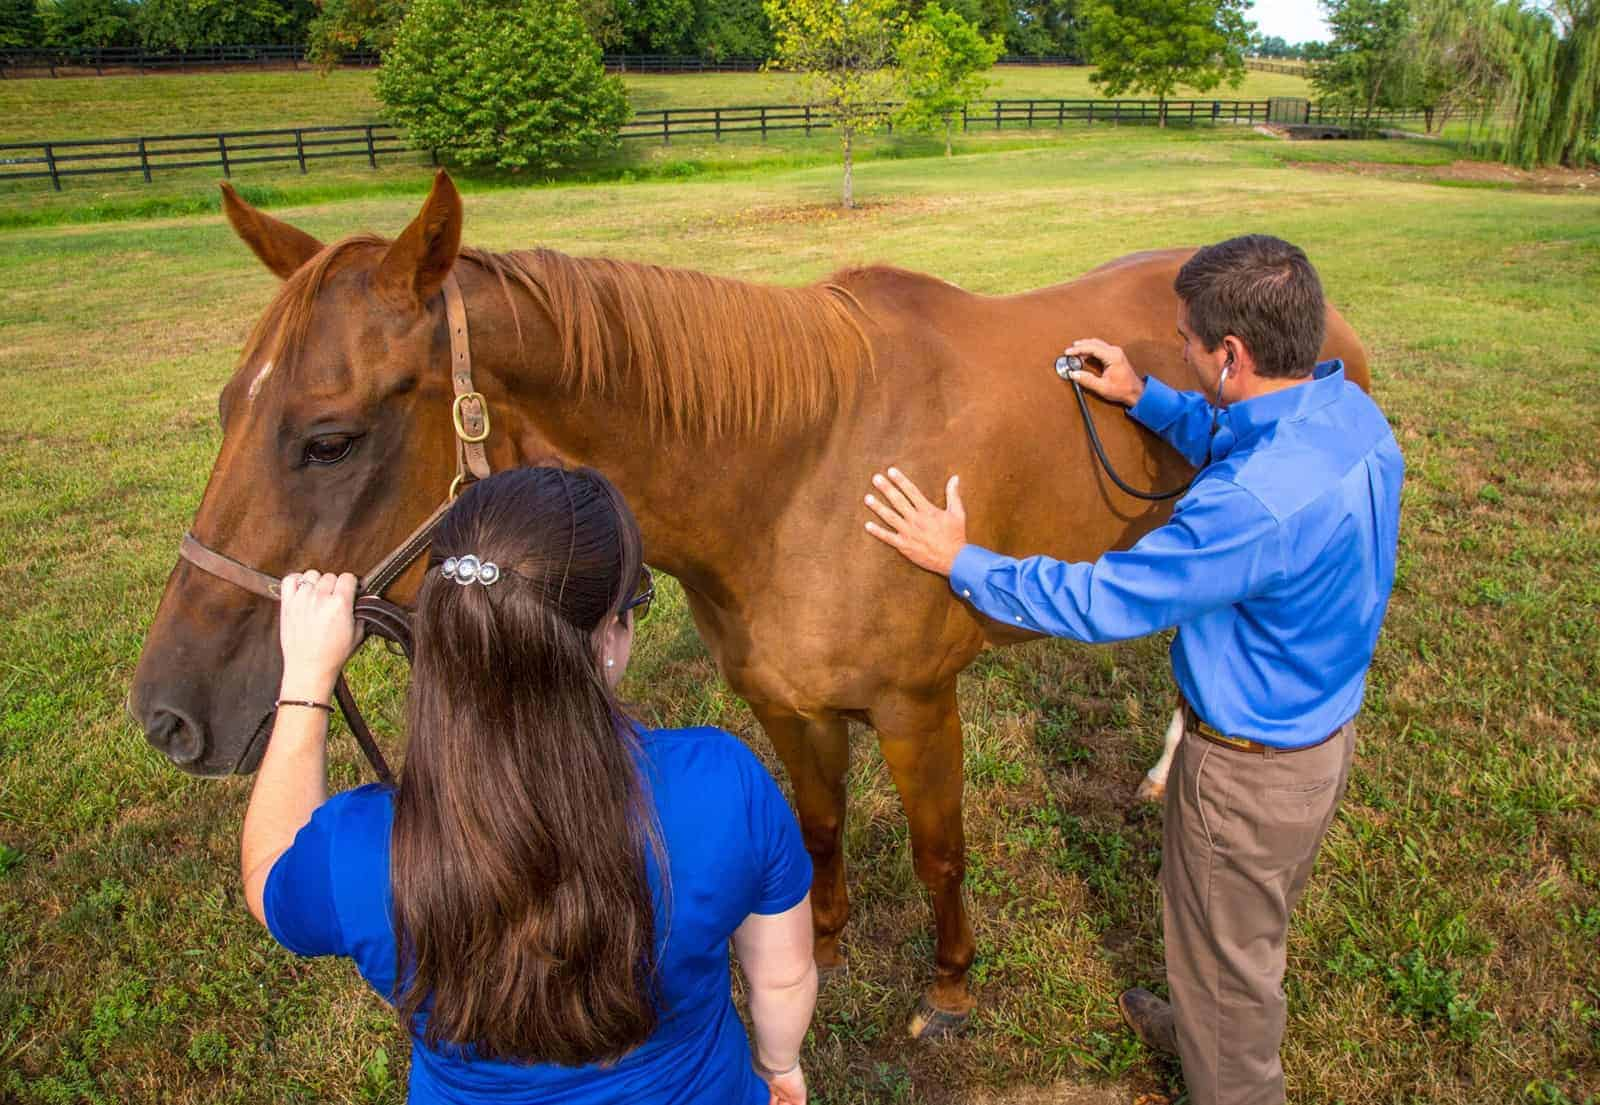 Prepurchase Exams: Crystal Ball Not Included in Veterinarian's Kit